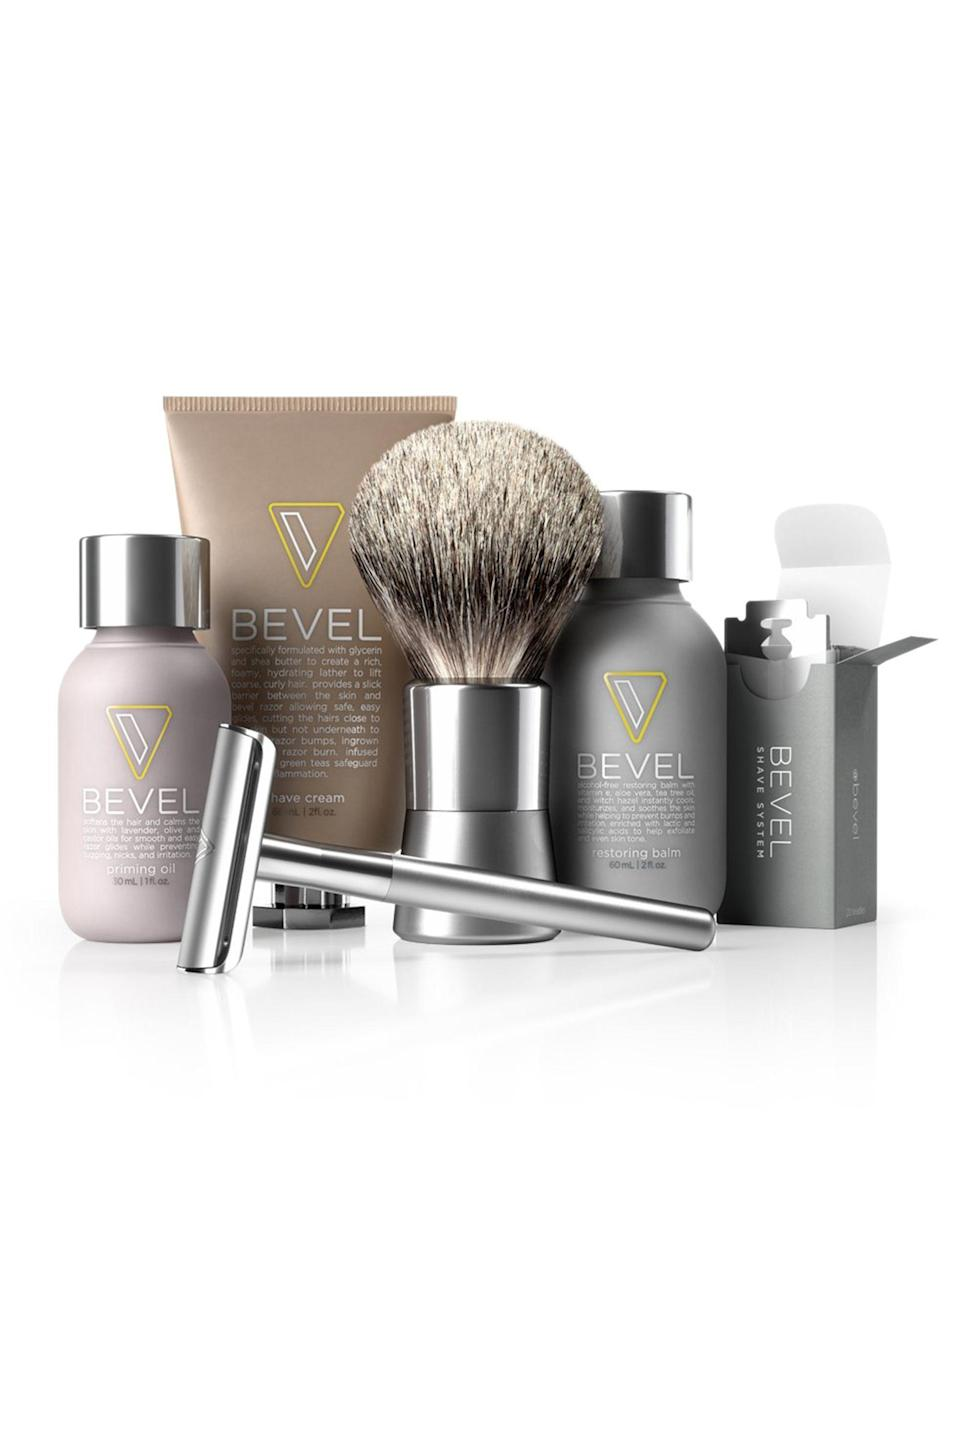 """<p><strong>Bevel</strong></p><p>amazon.com</p><p><strong>$89.99</strong></p><p><a href=""""https://www.amazon.com/dp/B00IT8K564?tag=syn-yahoo-20&ascsubtag=%5Bartid%7C10051.g.13053688%5Bsrc%7Cyahoo-us"""" rel=""""nofollow noopener"""" target=""""_blank"""" data-ylk=""""slk:Shop Now"""" class=""""link rapid-noclick-resp"""">Shop Now</a></p><p>Intro him to his new favorite grooming brand with a set that includes everything from a shave brush to priming oil to a safety razor and more. This shaving kit boasts over 400 reviews, with several mentioning how Bevel's products help prevent razor bumps. </p>"""